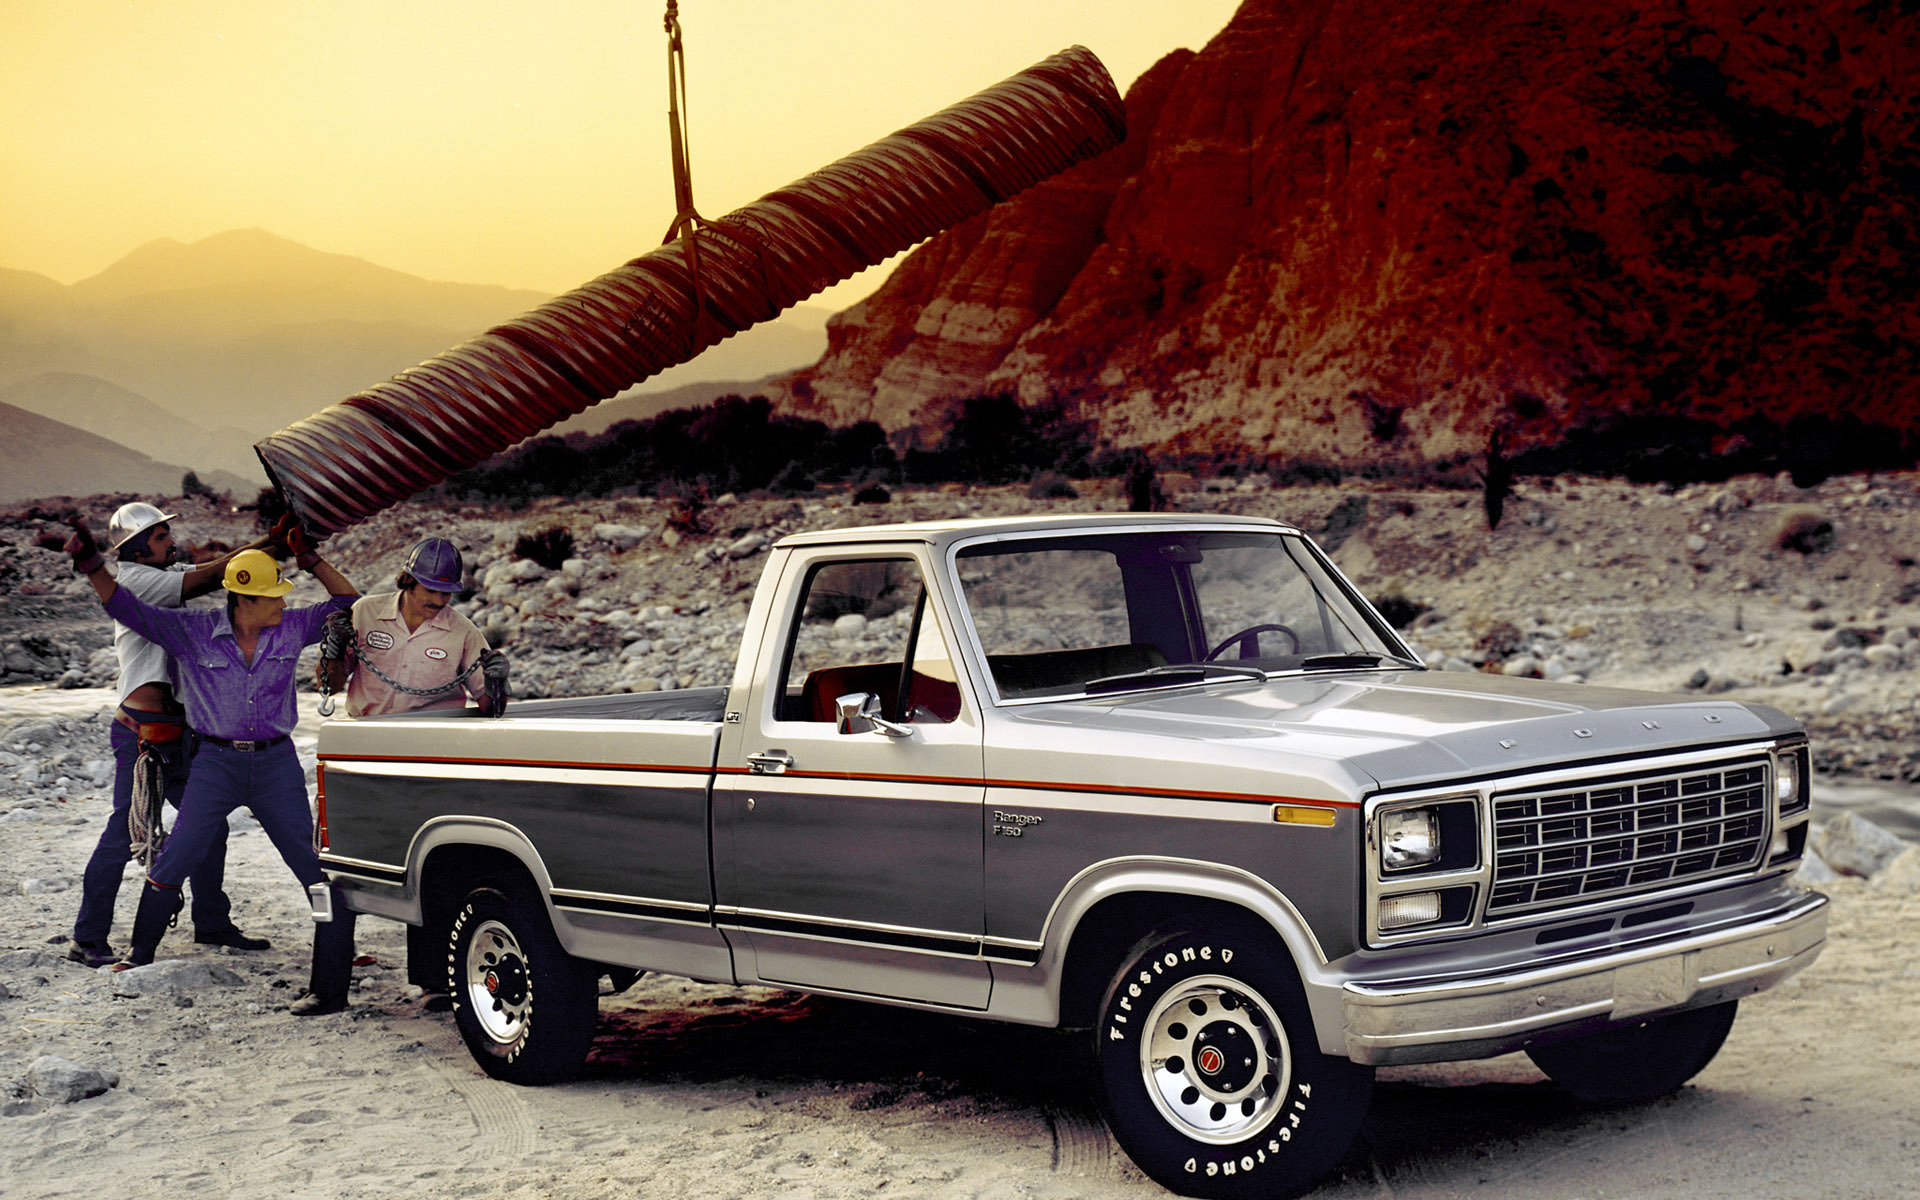 1980 Ford F 150 wallpaper 19523 1920x1200